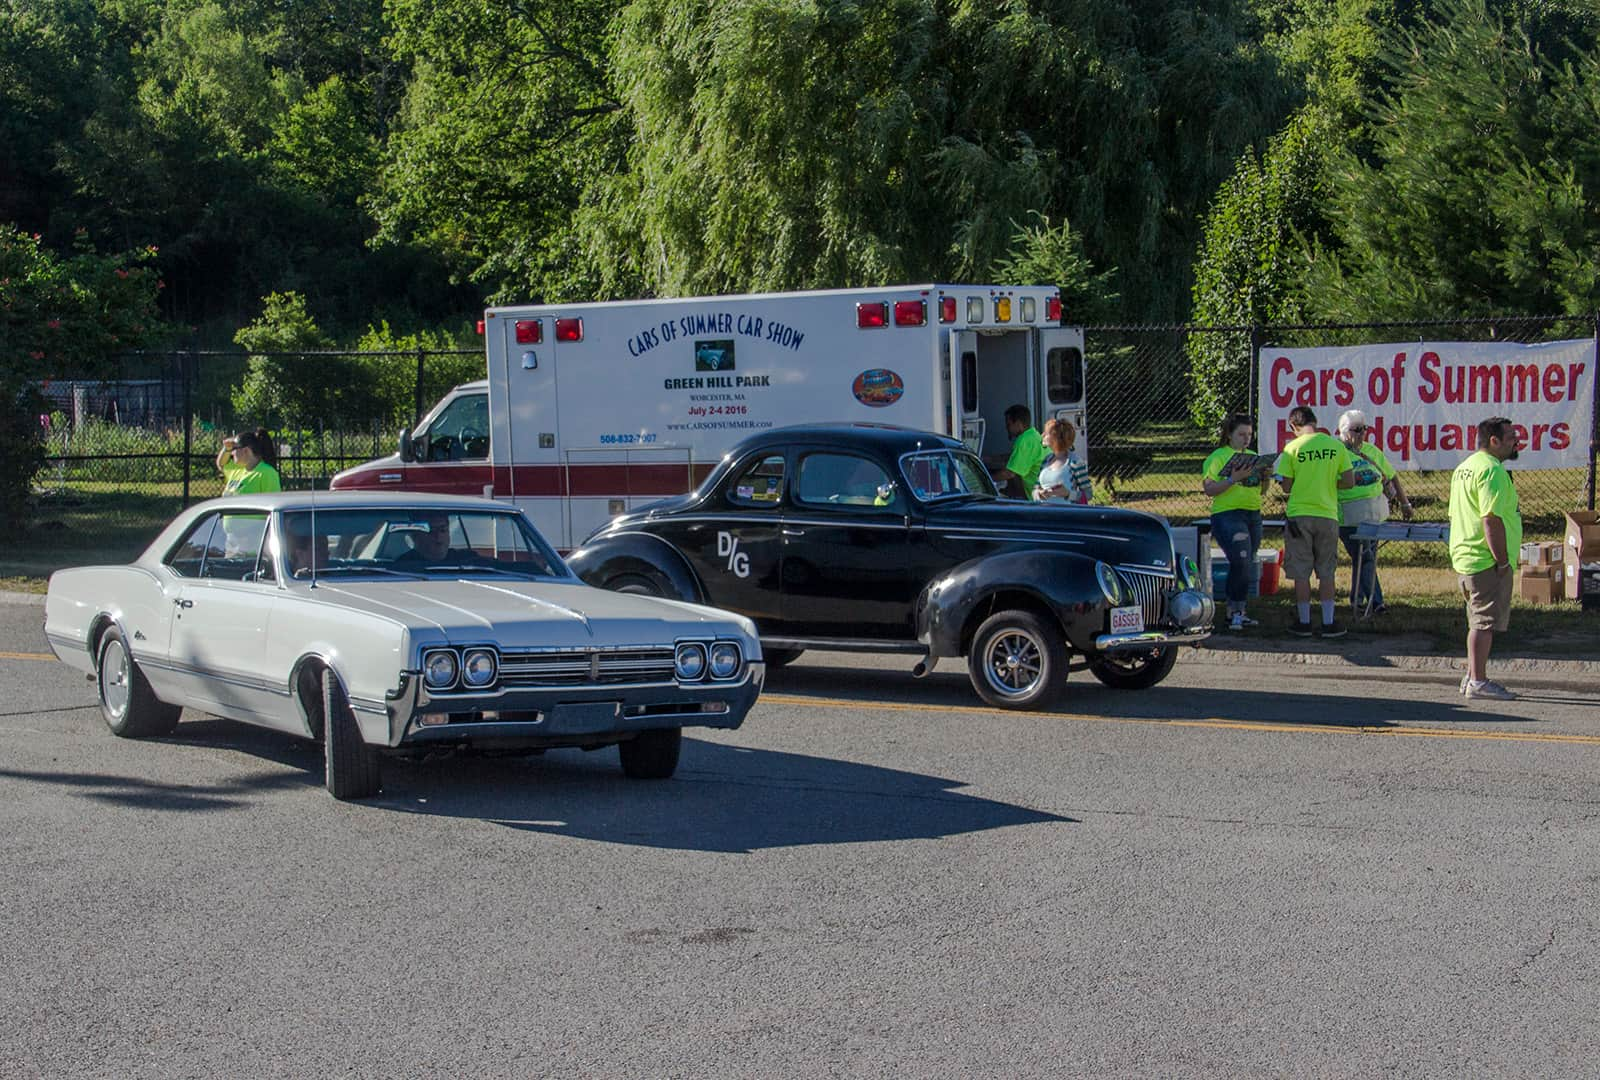 2016 Cars of Summer2016 Cars of Summer, Arrival at Show